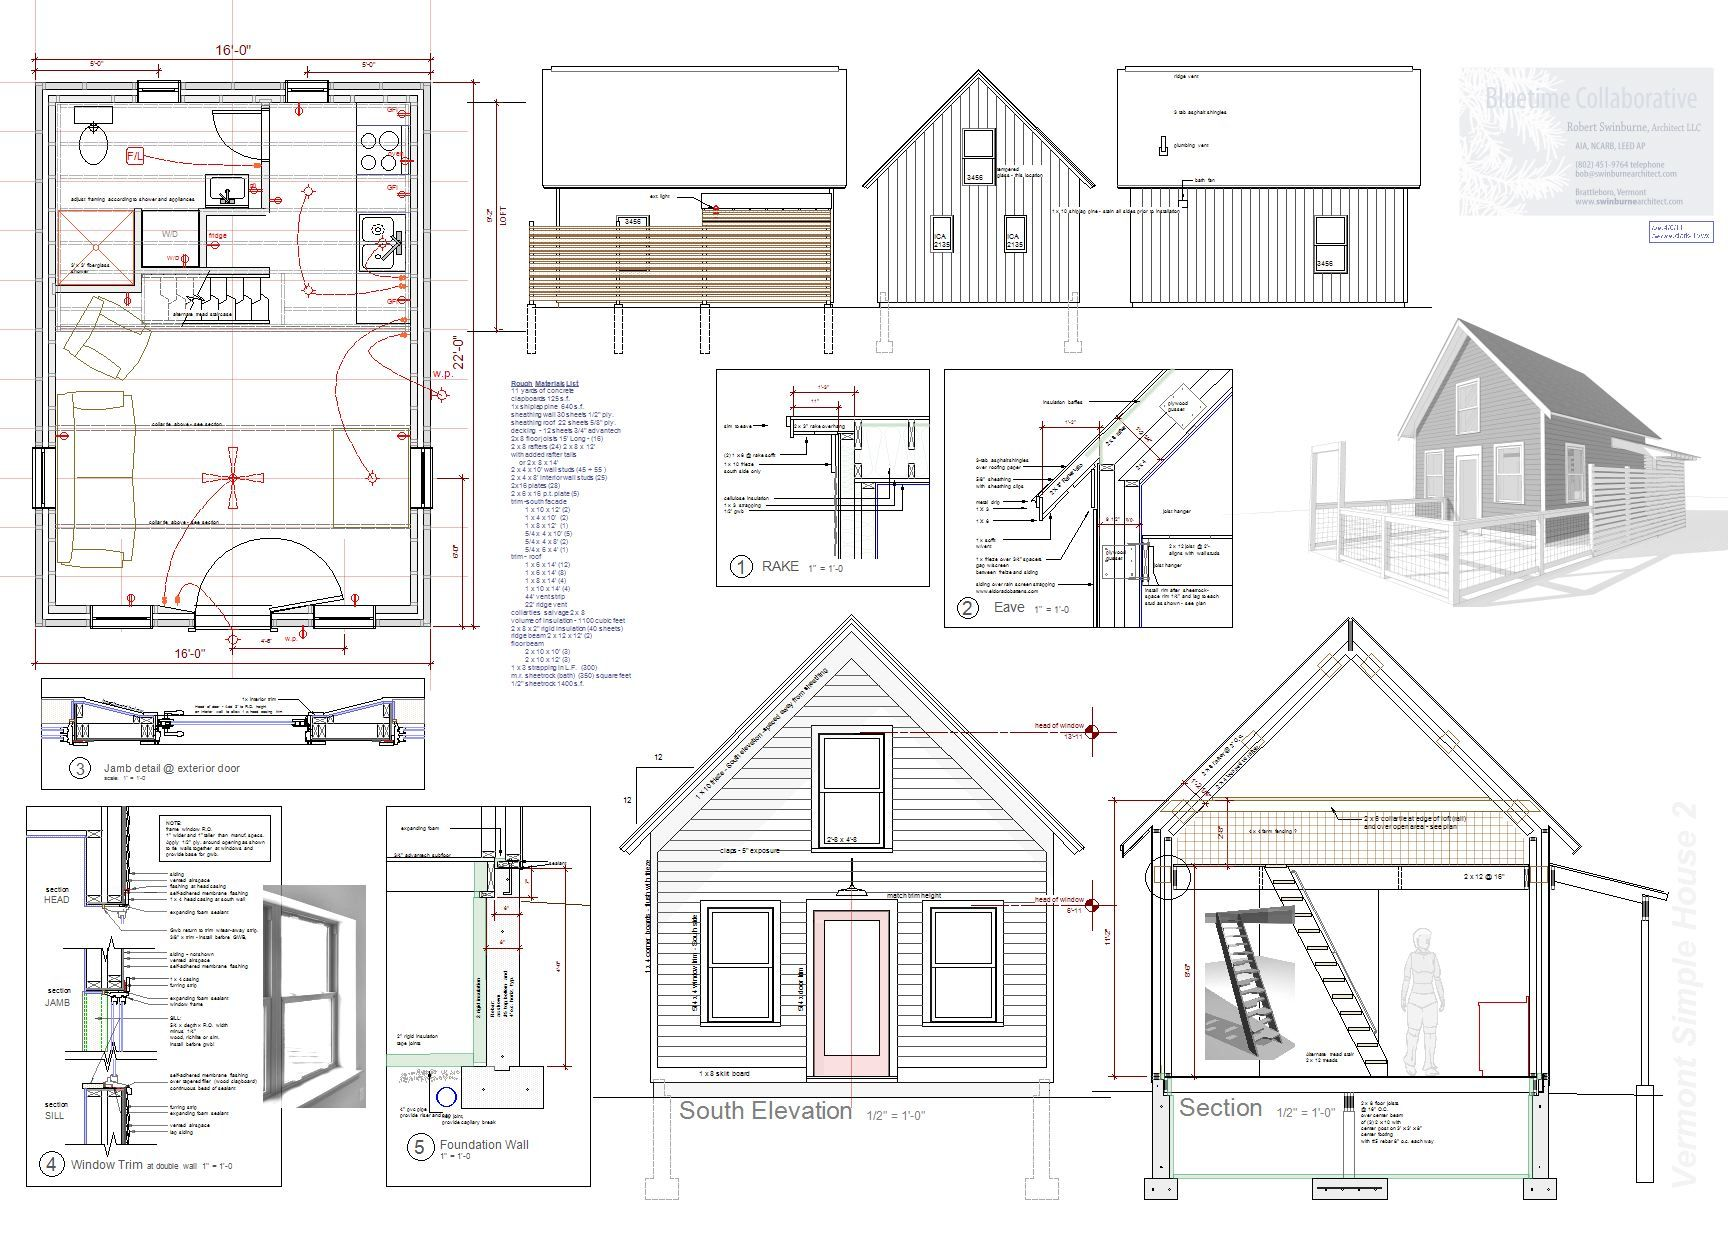 Groovy 17 Best Images About Tiny House Plans Design Ideas On Pinterest Largest Home Design Picture Inspirations Pitcheantrous